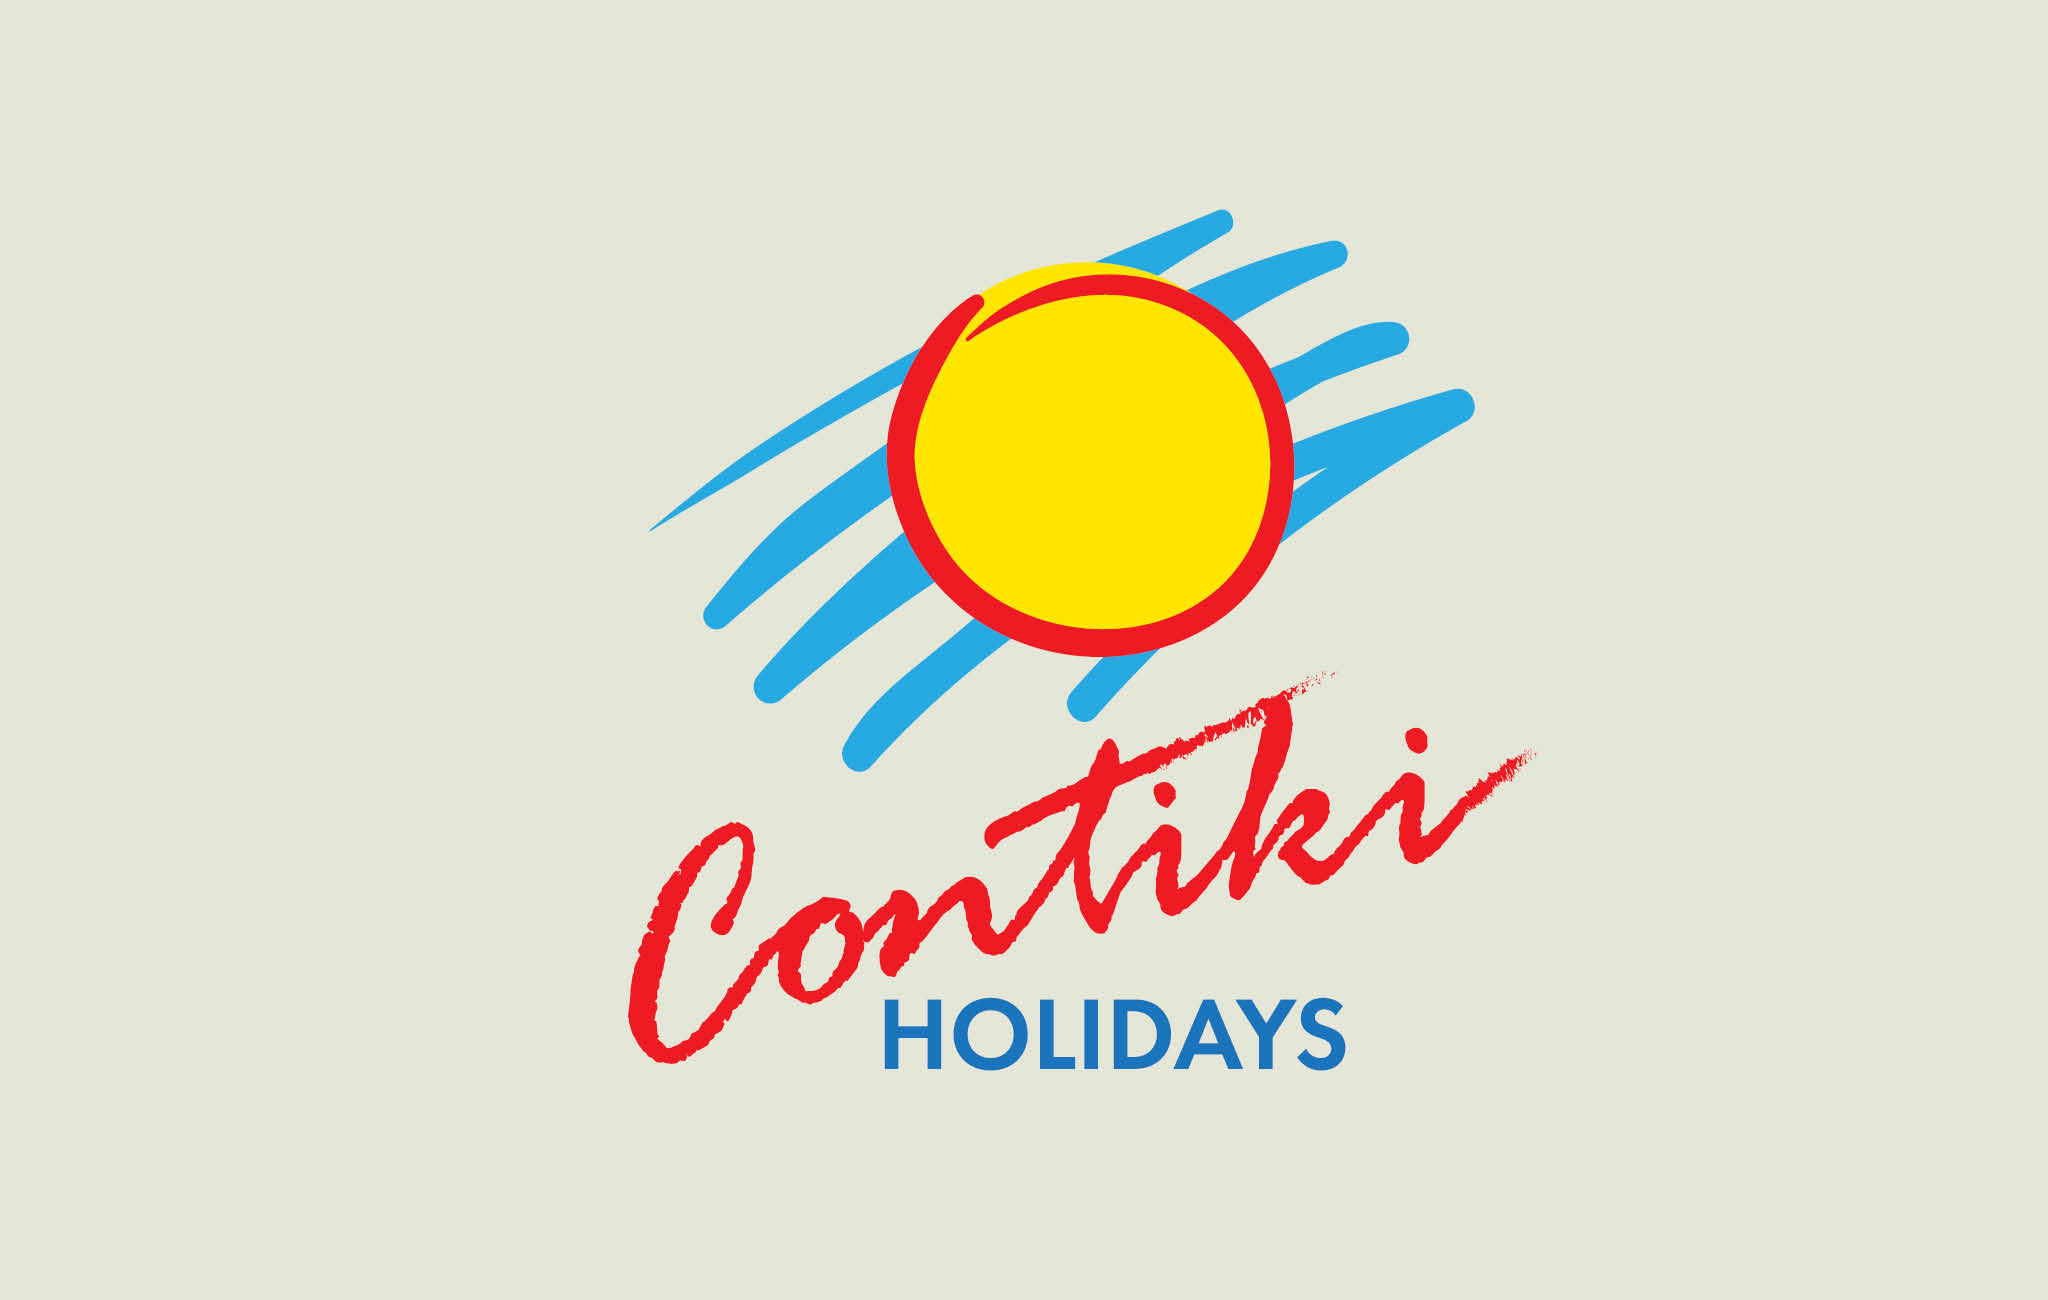 Logo design for Contiki Holidays